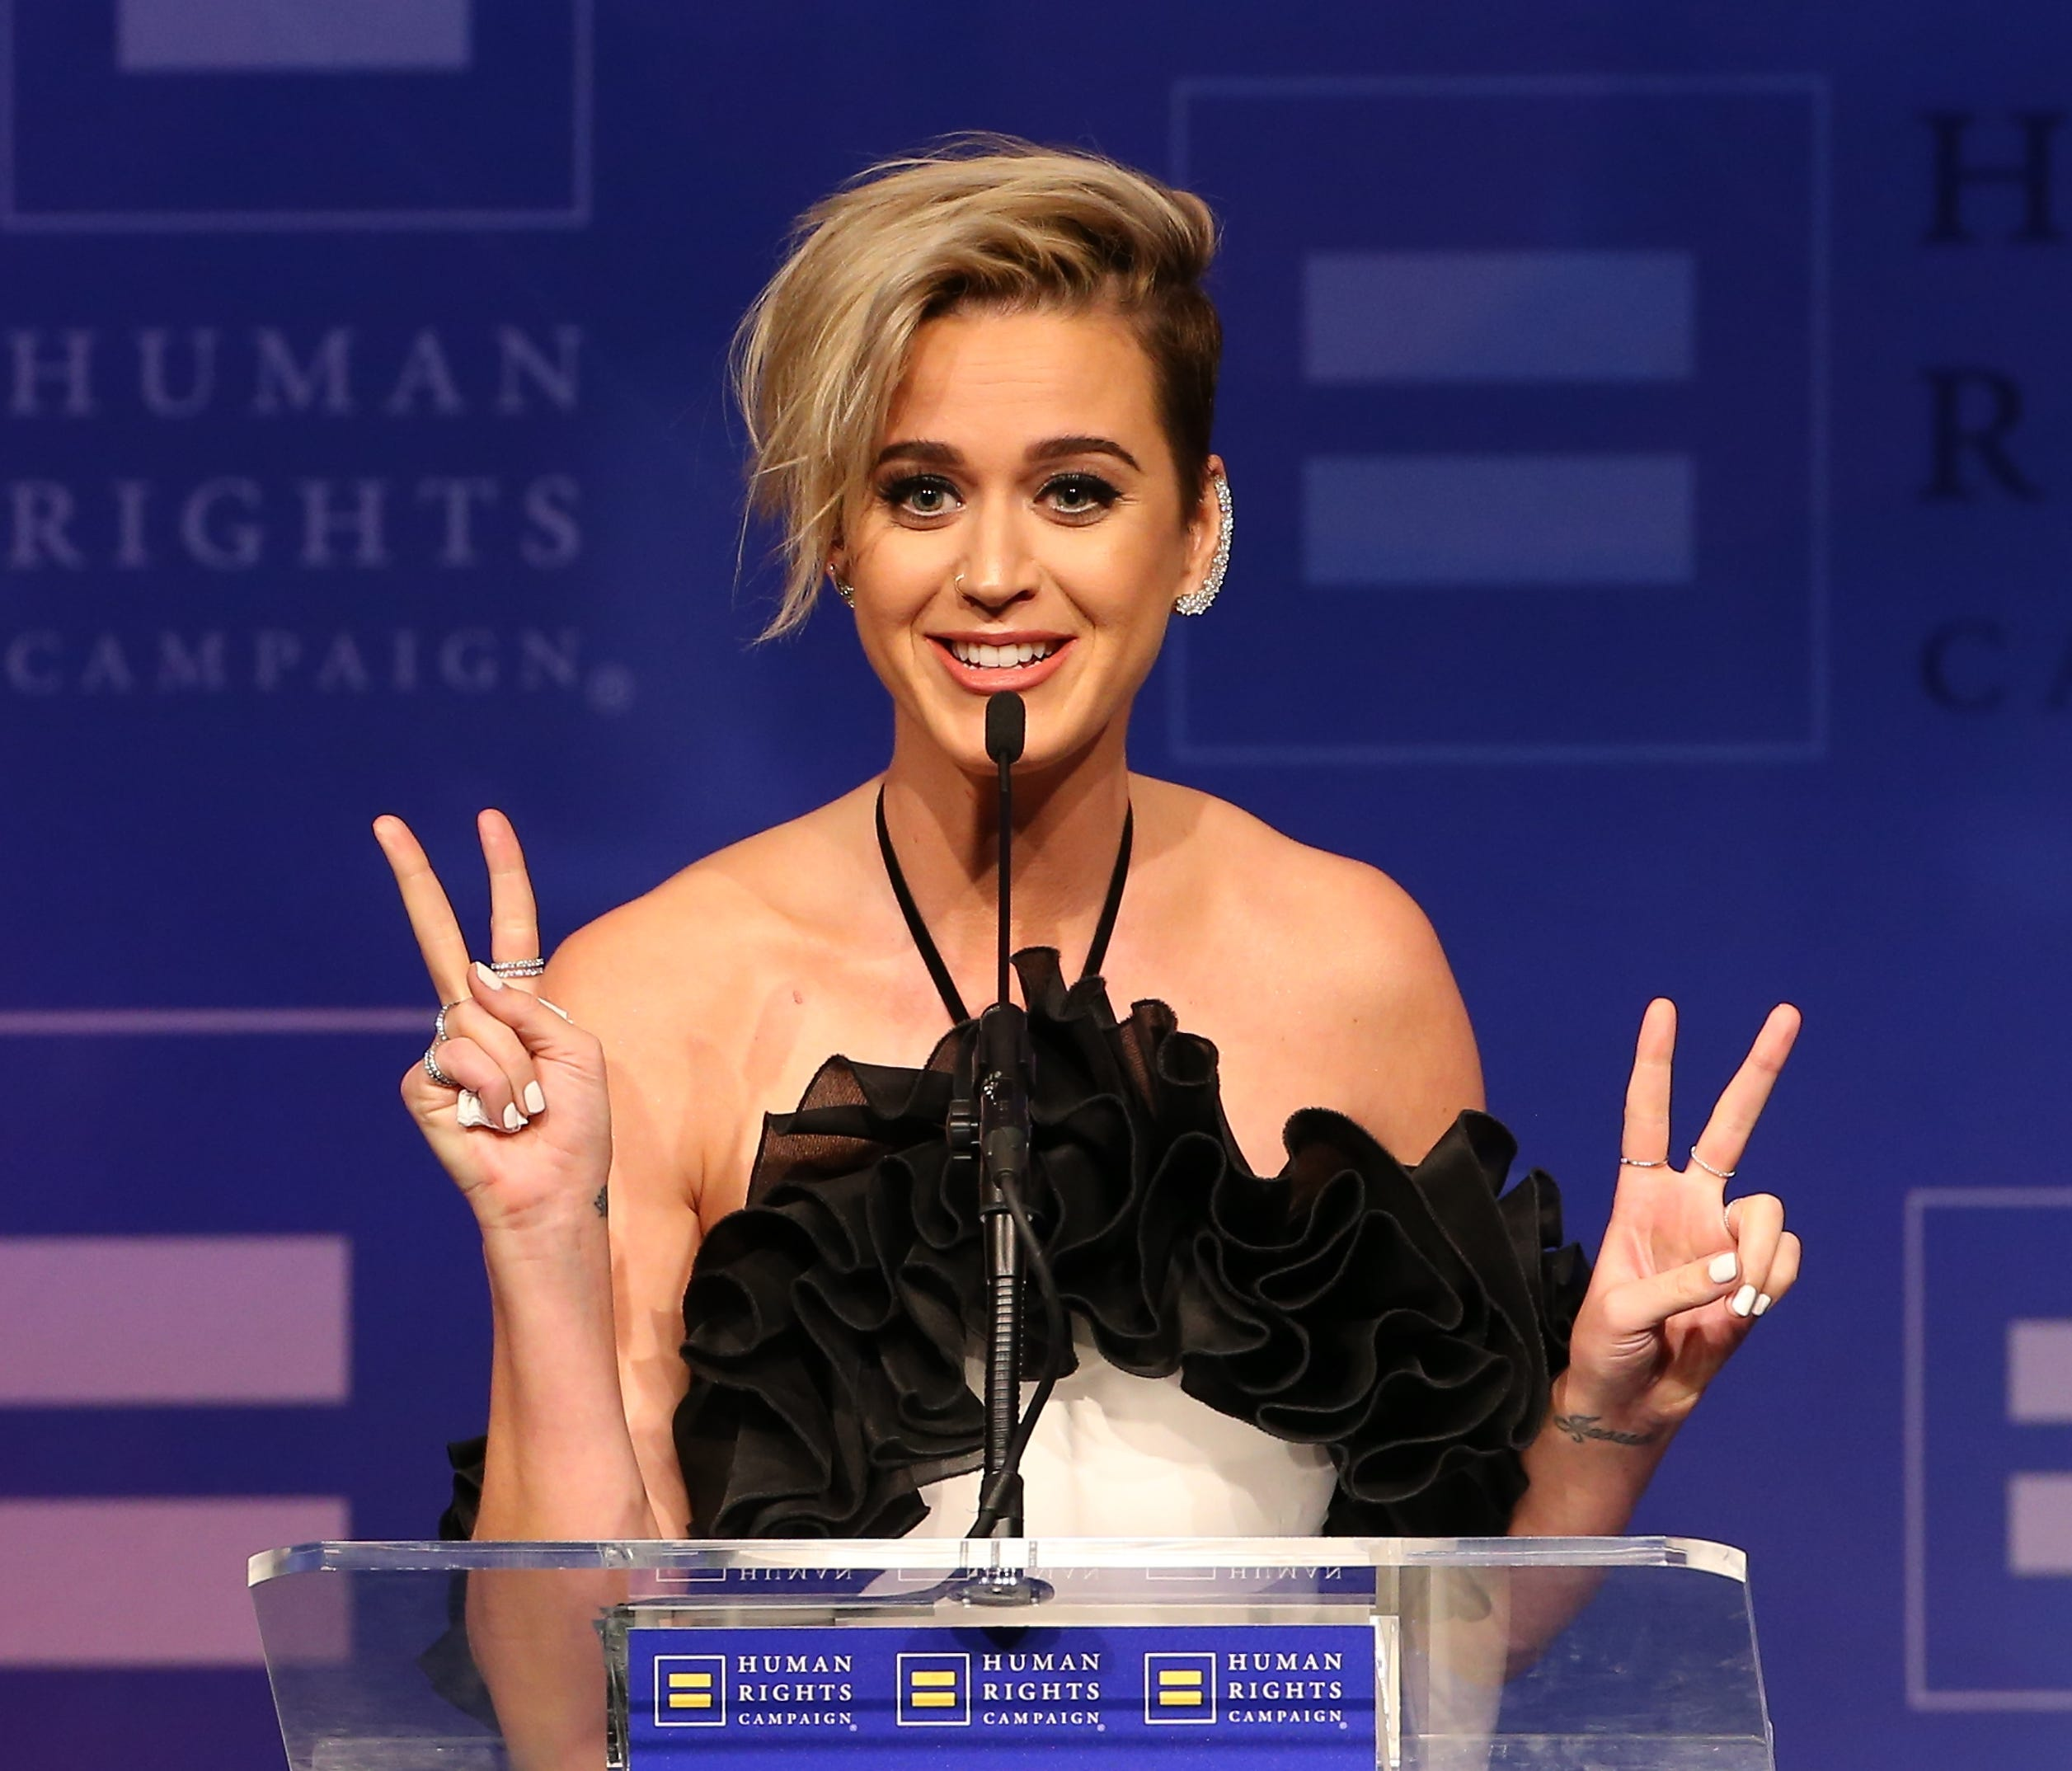 Katy Perry takes the podium at Human Rights Campaign's Los Angeles gala.